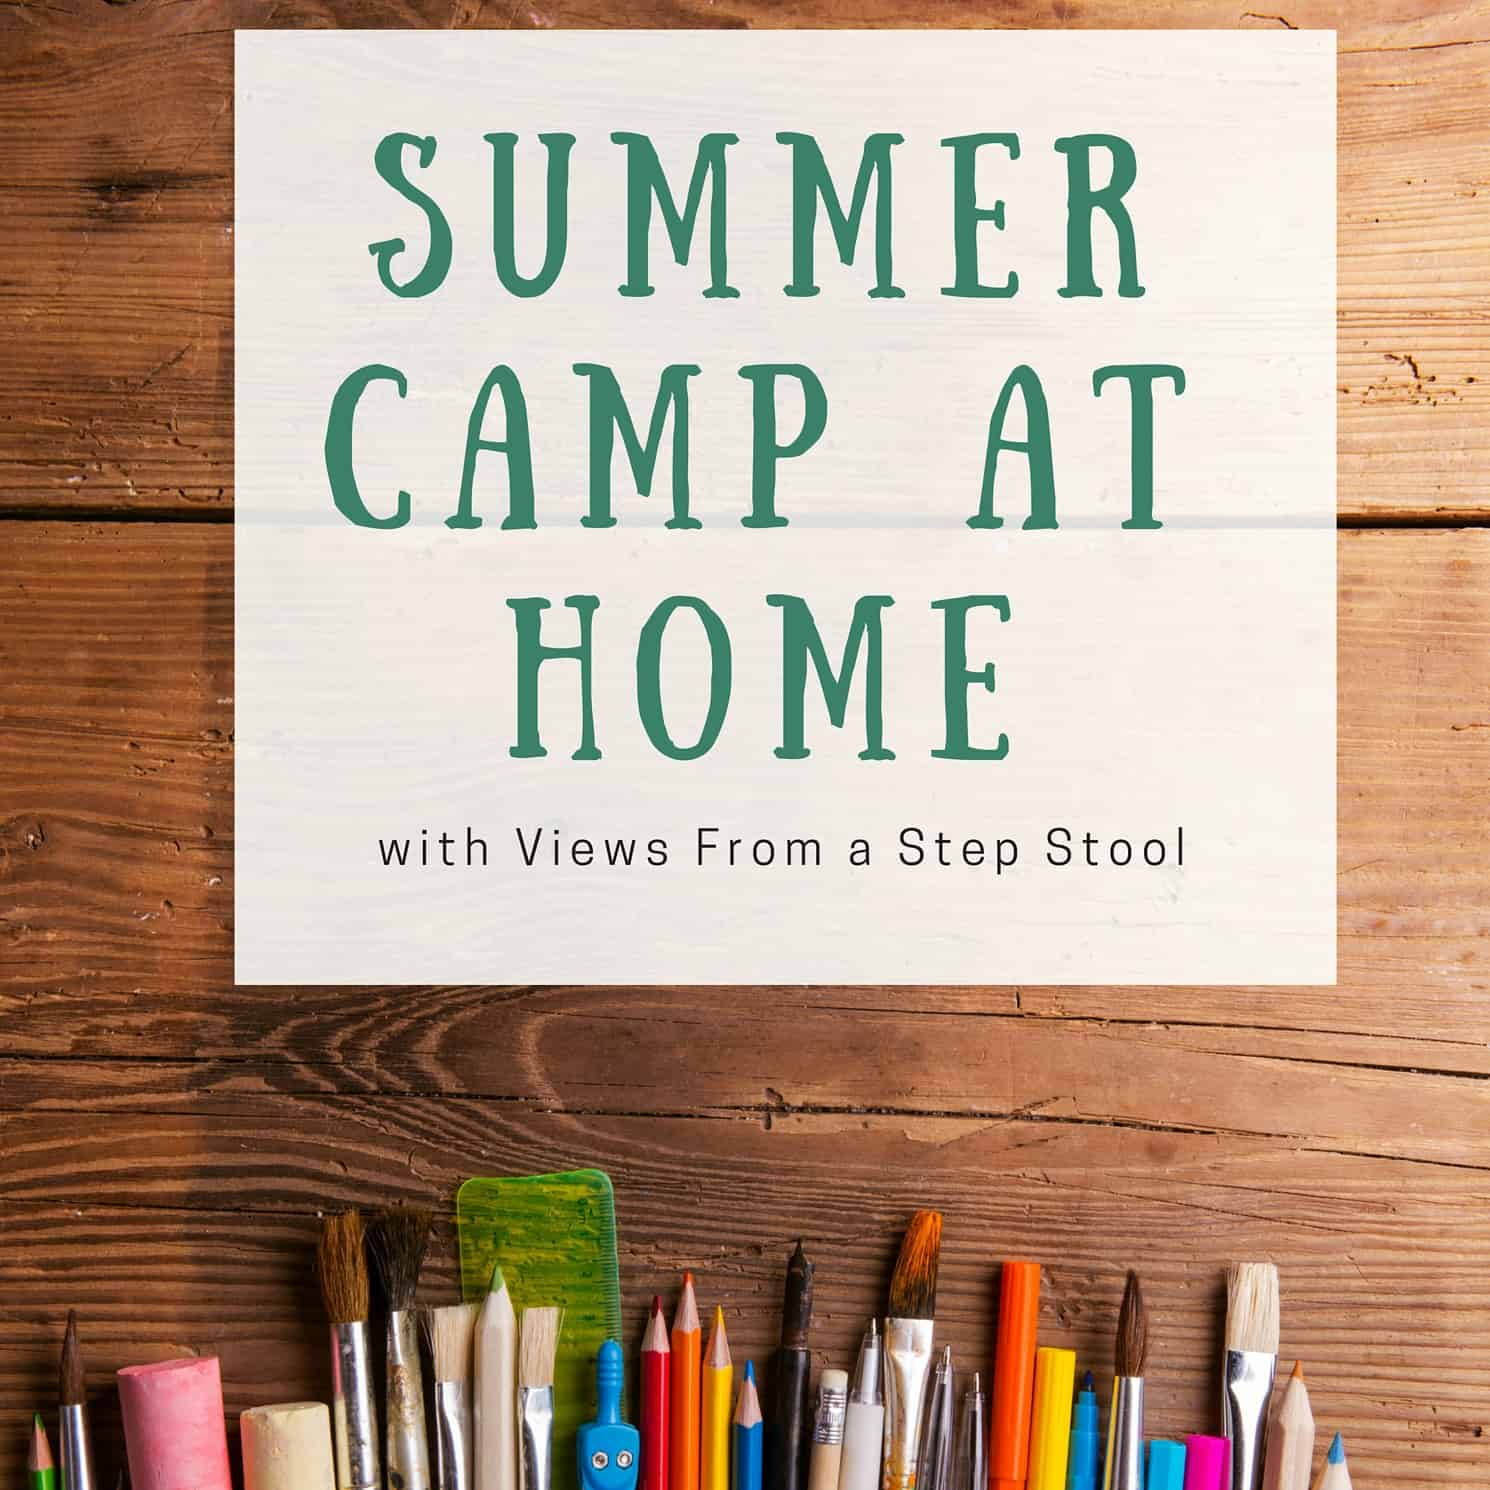 Summer Camp at Home!! Join in TONS of Fun!